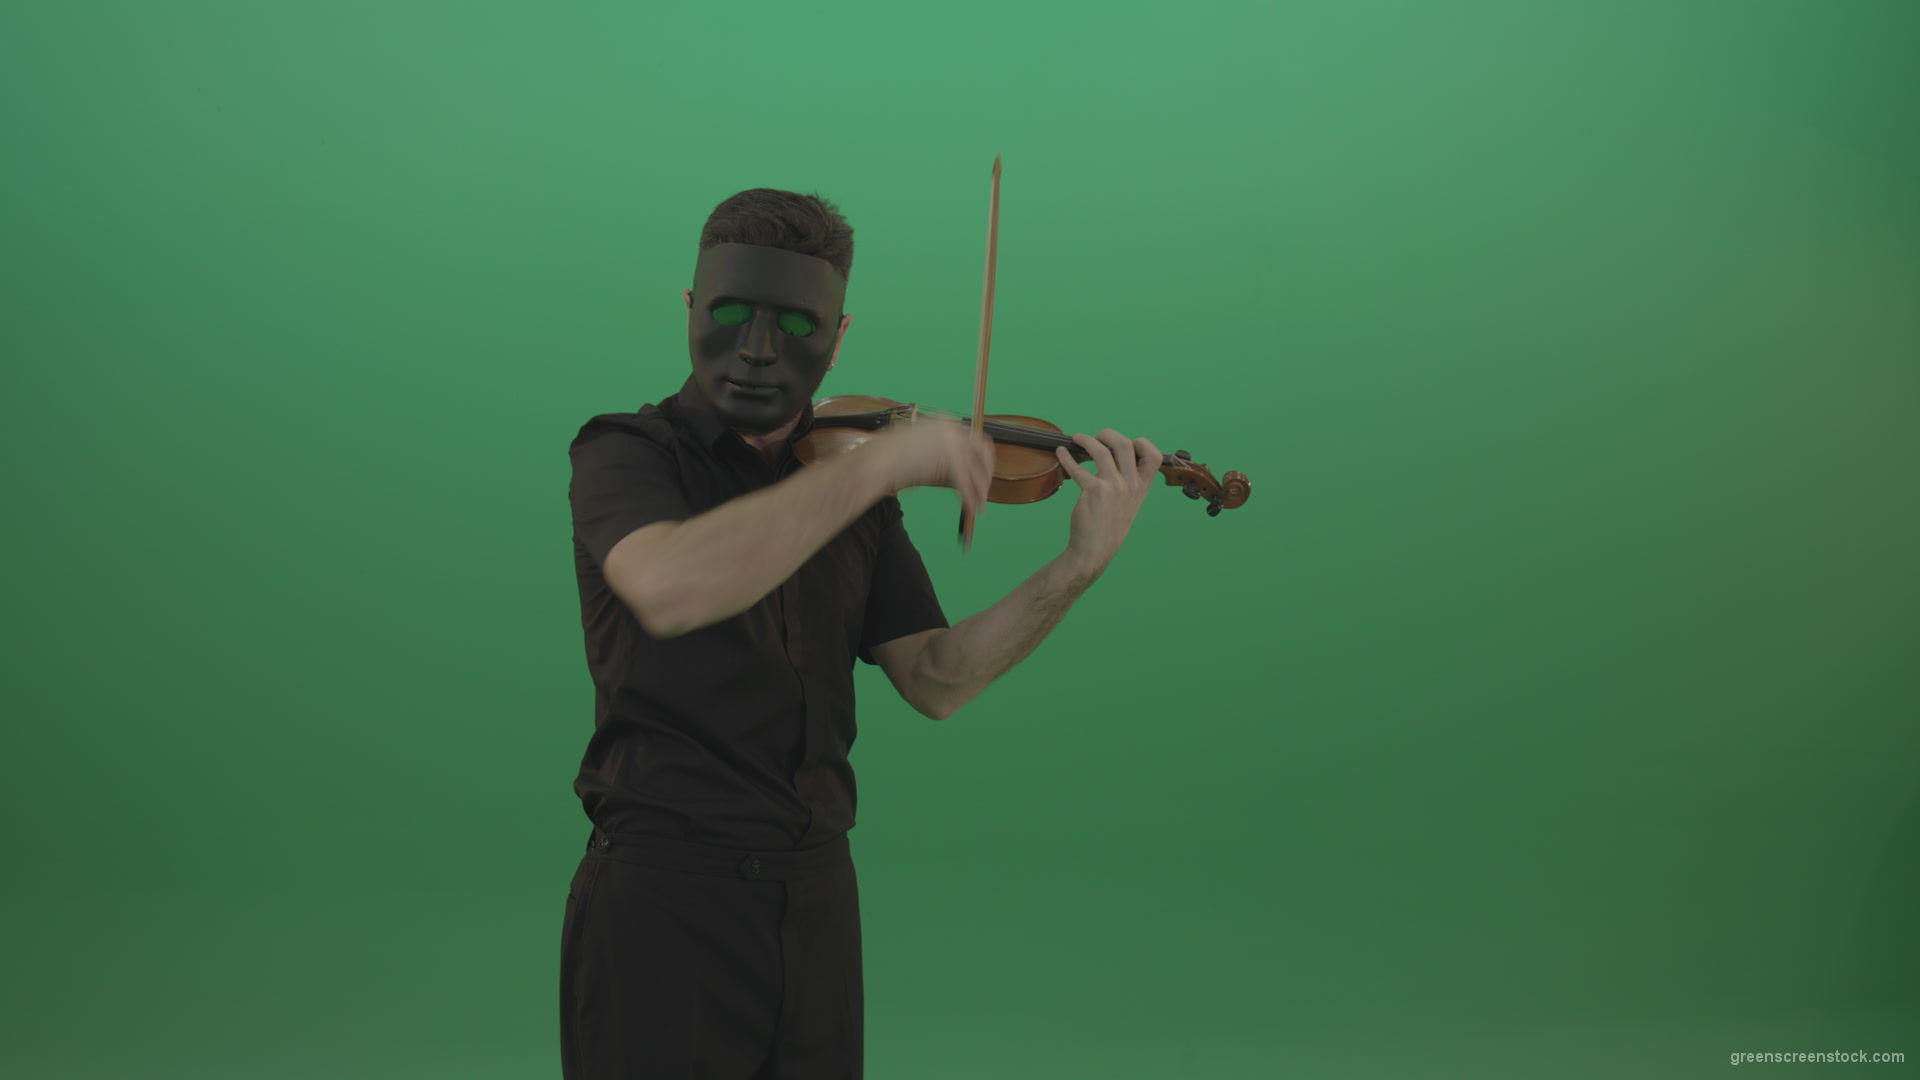 Man In Black Wear And Mask Play Violin Fiddle Strings Gothic Dark Music Isolated Green Screen Video Footage Green Screen Stock